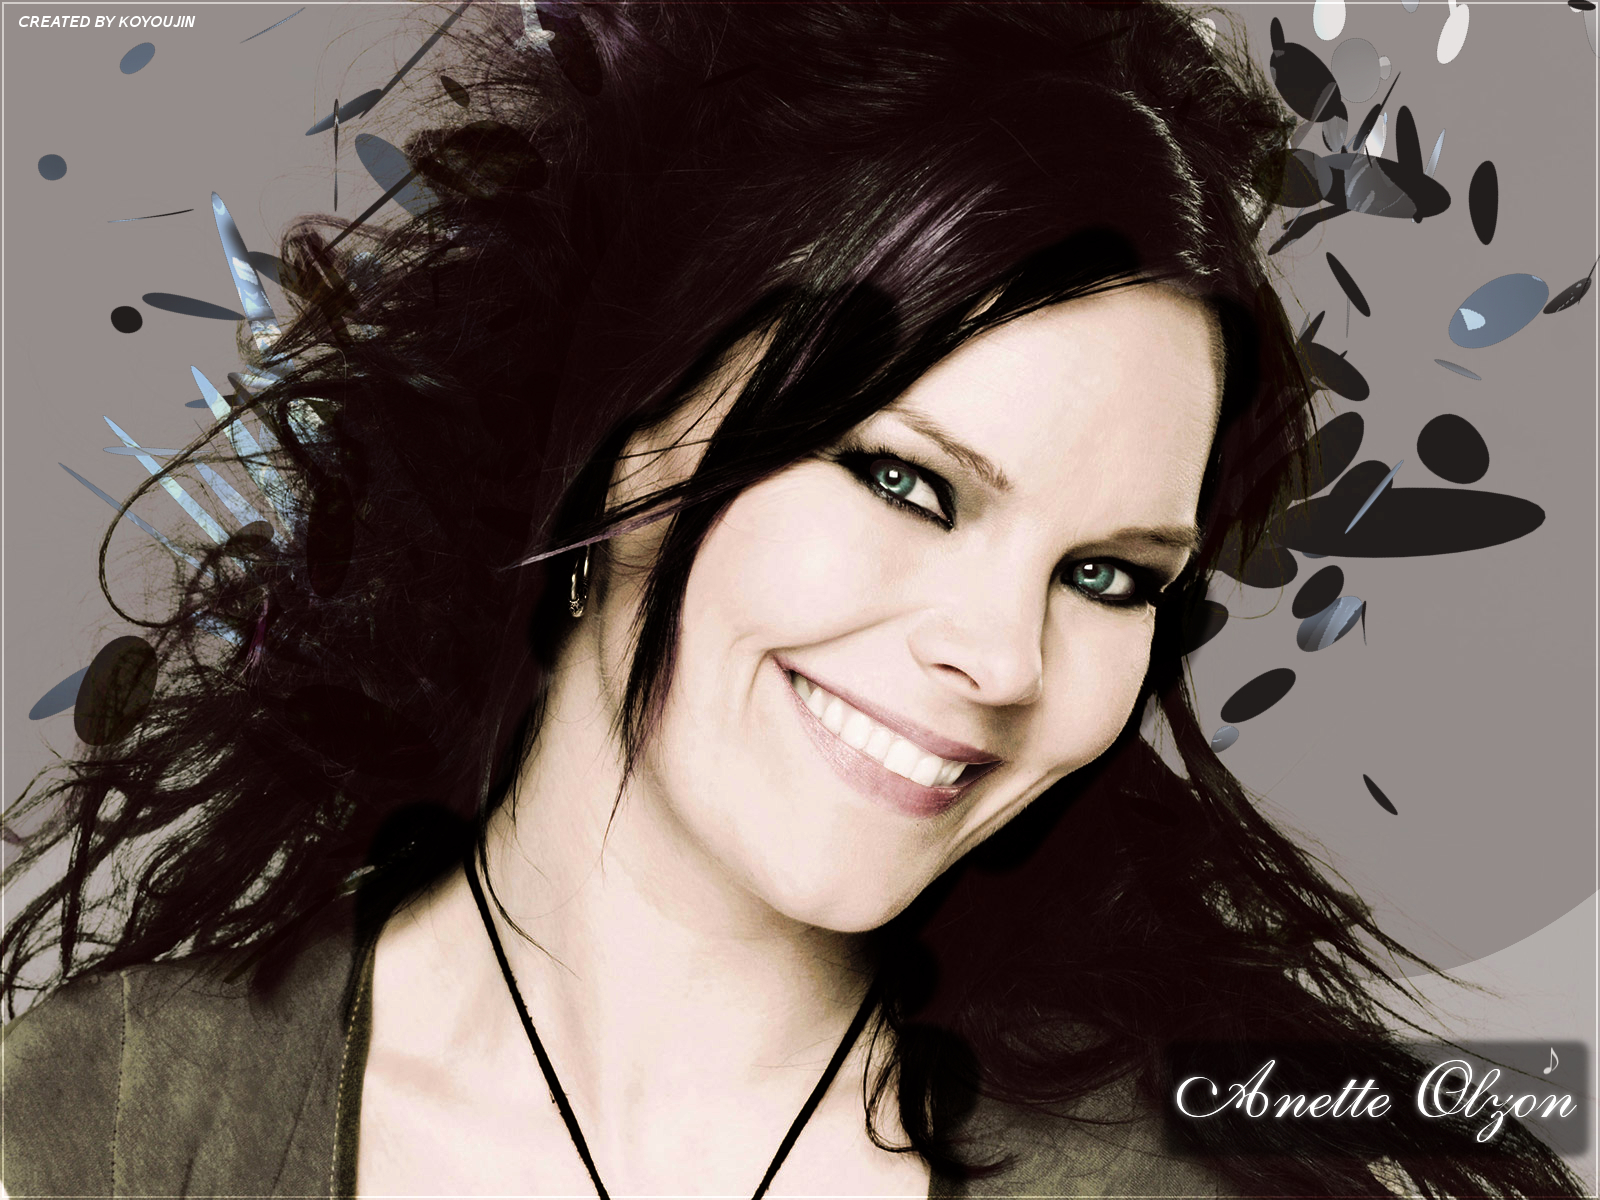 Anette Olzon 2 Wallpaper From Gothic Girls Wallpapers Wallpaper